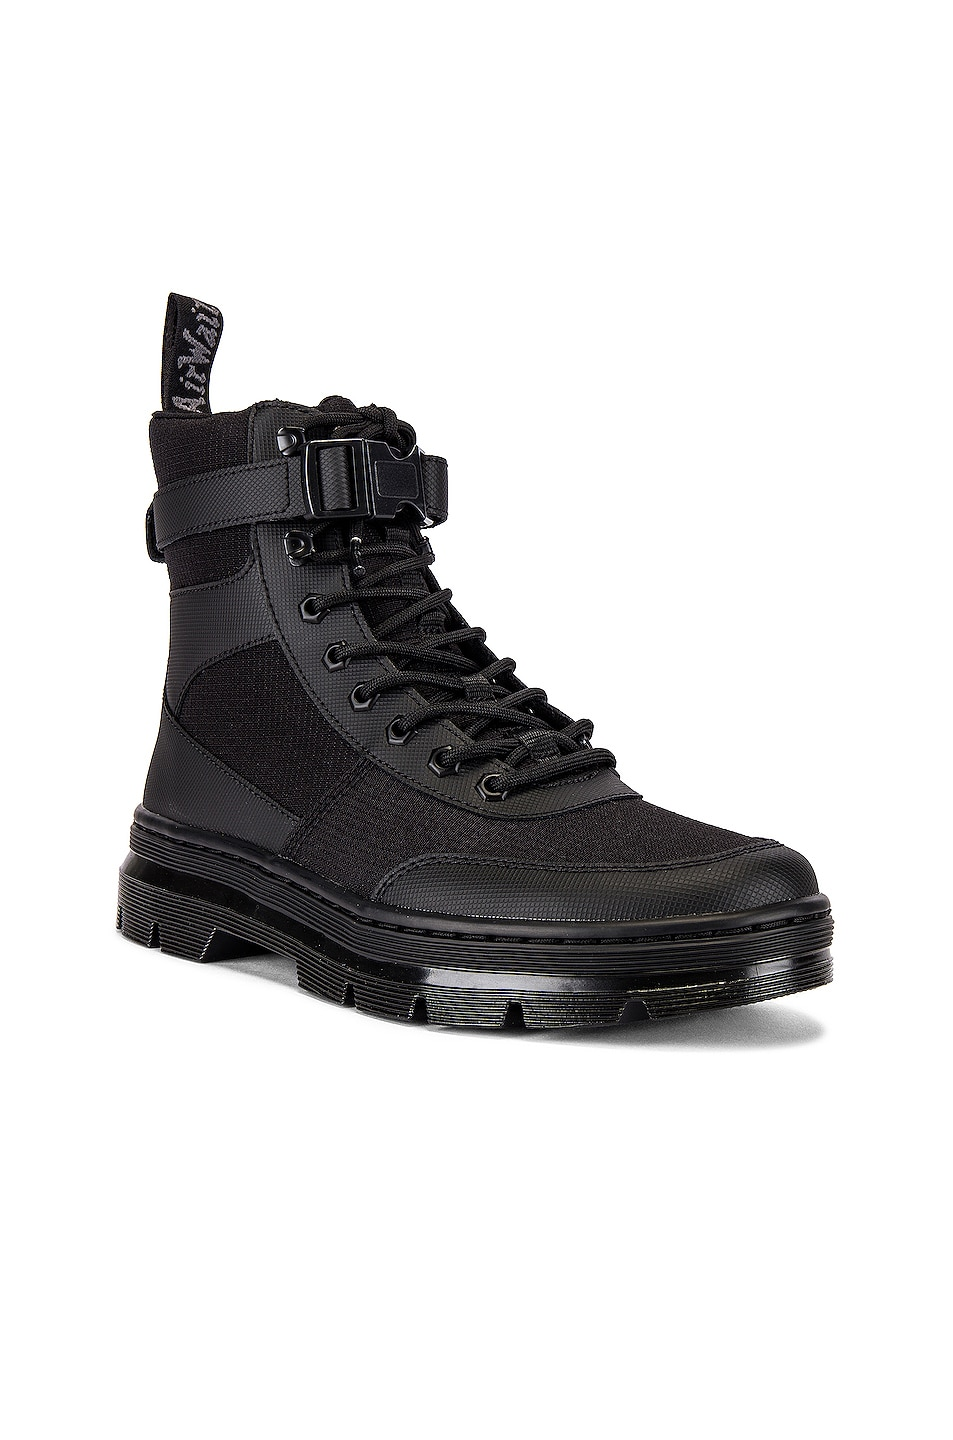 Image 2 of Dr. Martens Combs Tech Sneaker in Black